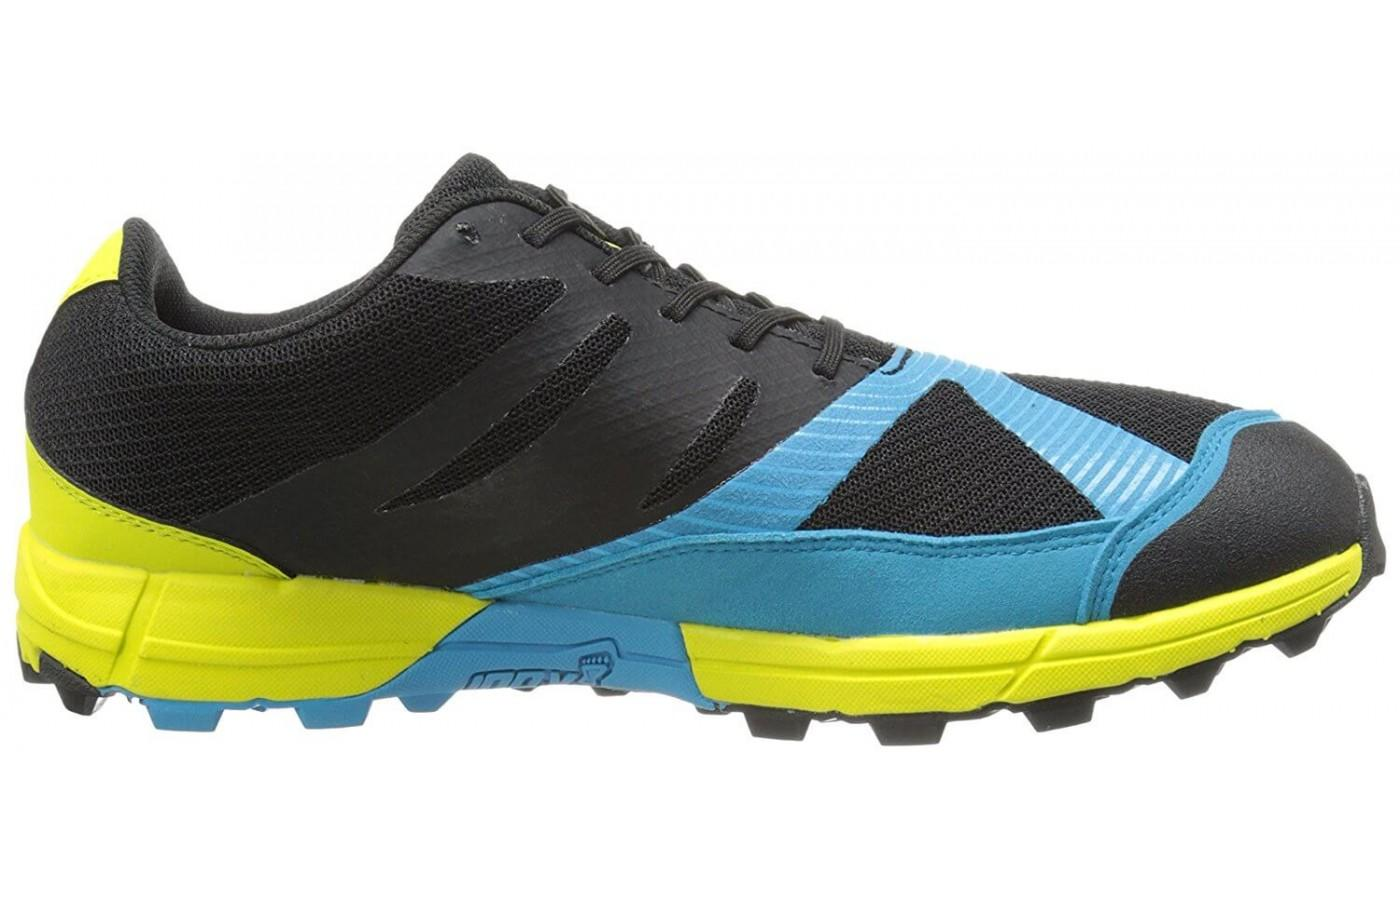 The Inov-8 Terraclaw 250 uses injected EVA foam for resilient cushioning